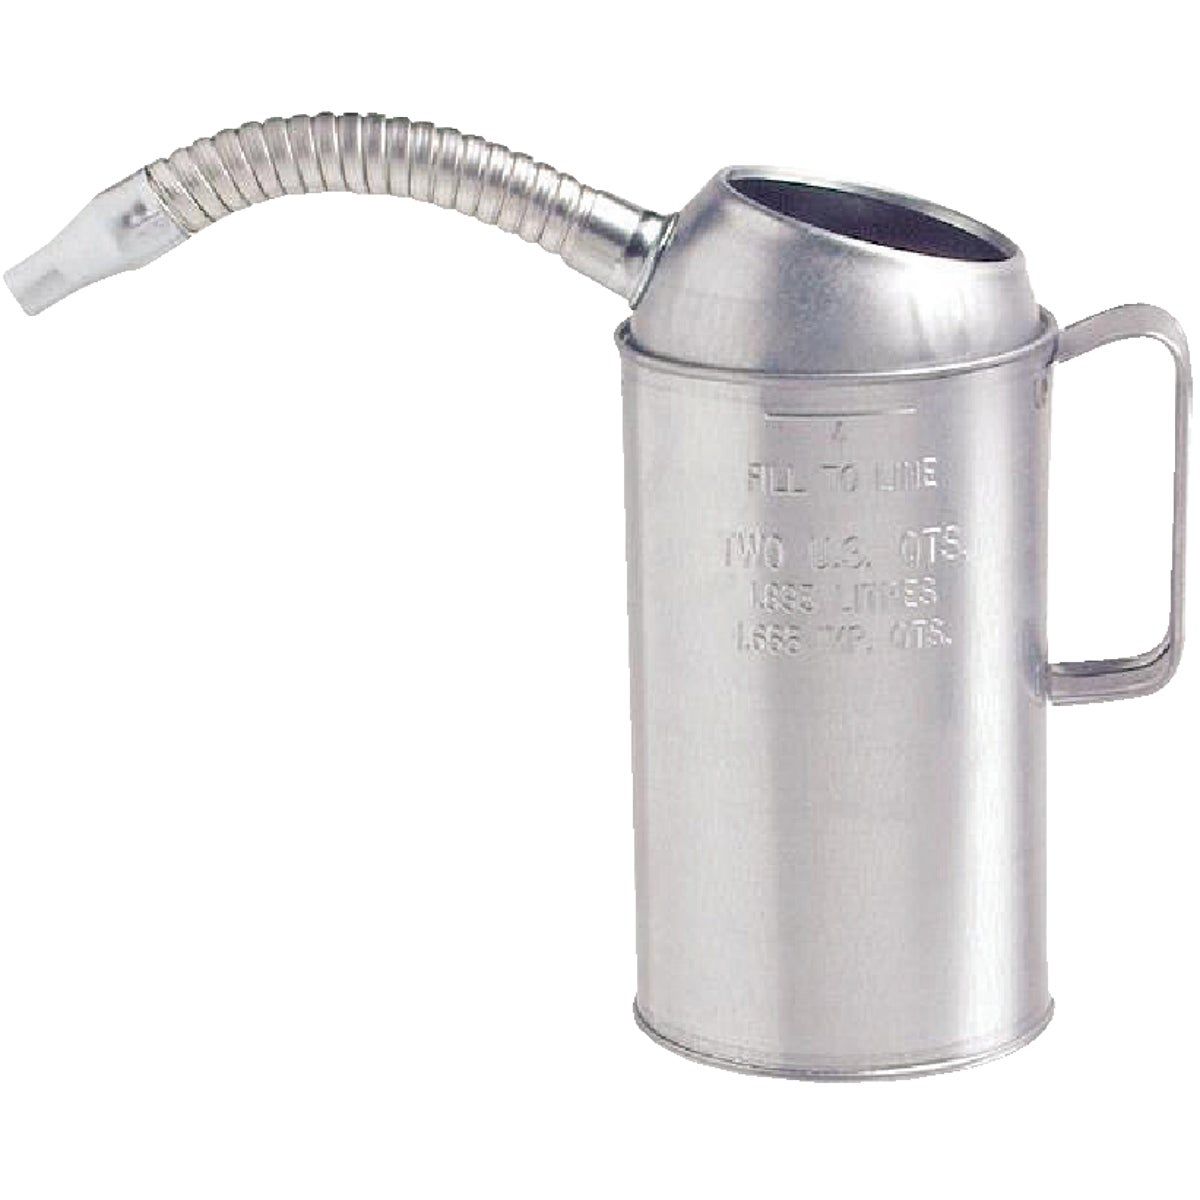 2QT GALVANIZED MEASURE